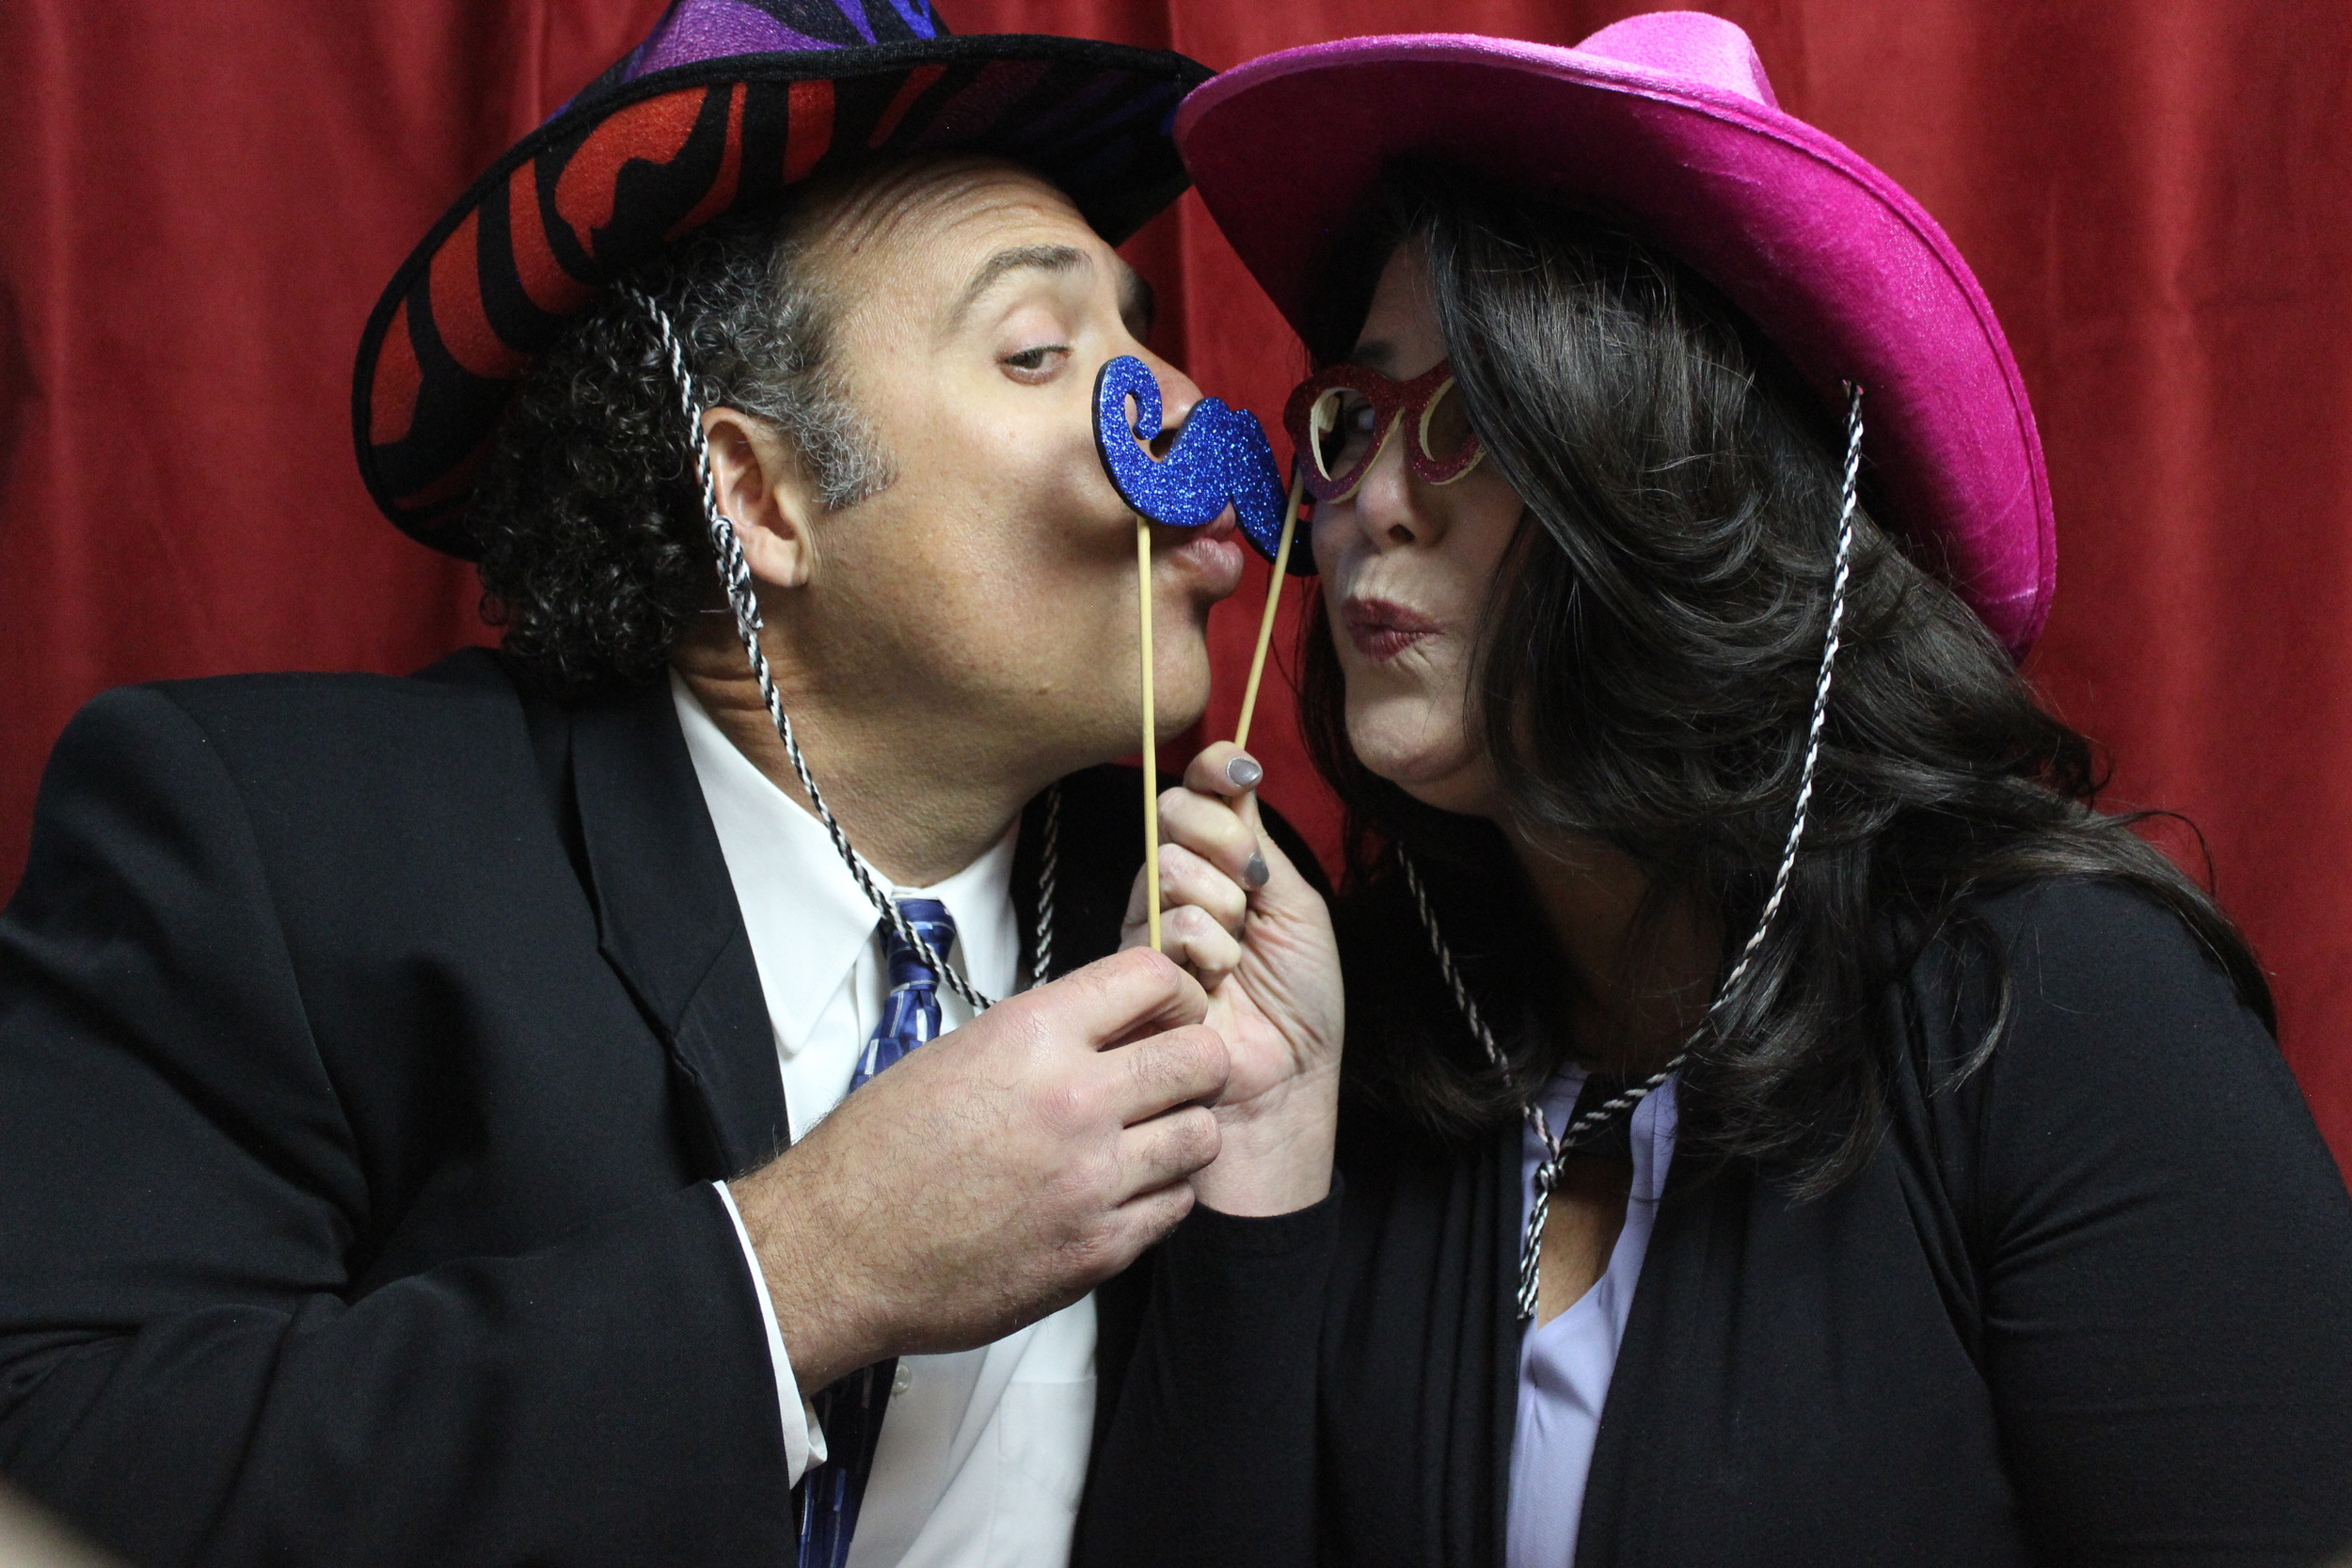 Ann-Marie & Maurice Photo Booth Wedding (212).jpg